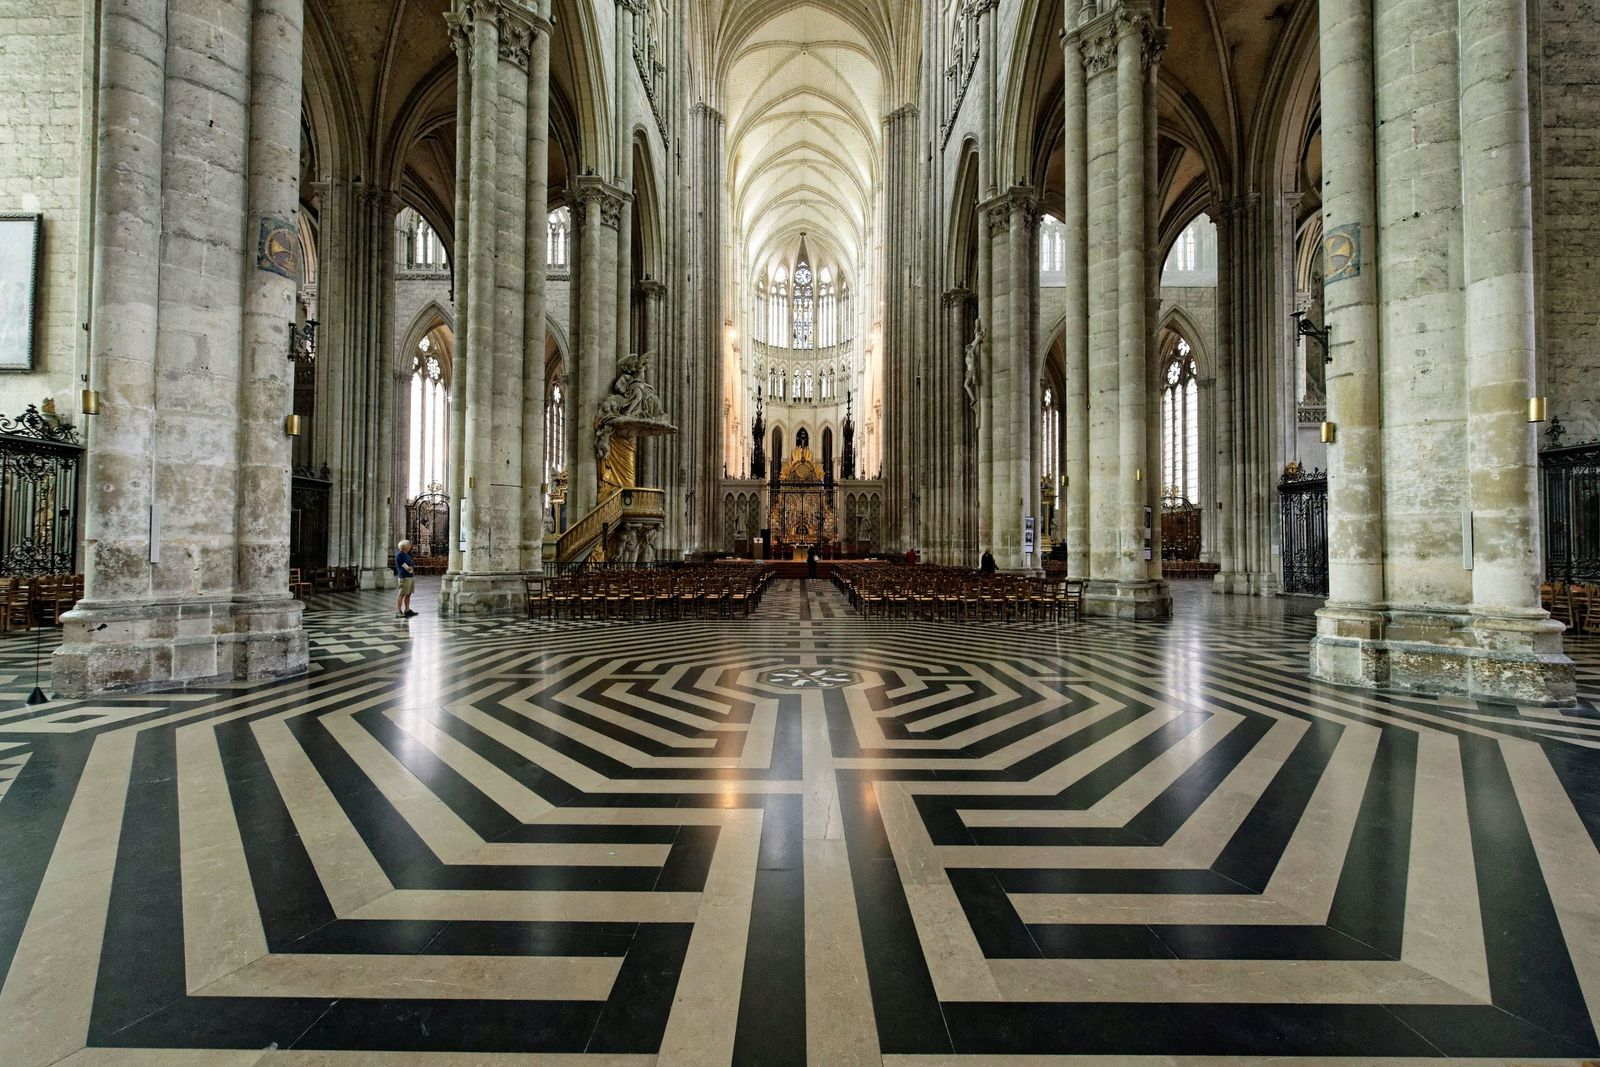 The labyrinth at Amiens Cathedral, France. The original is believed to date from the 13th century.